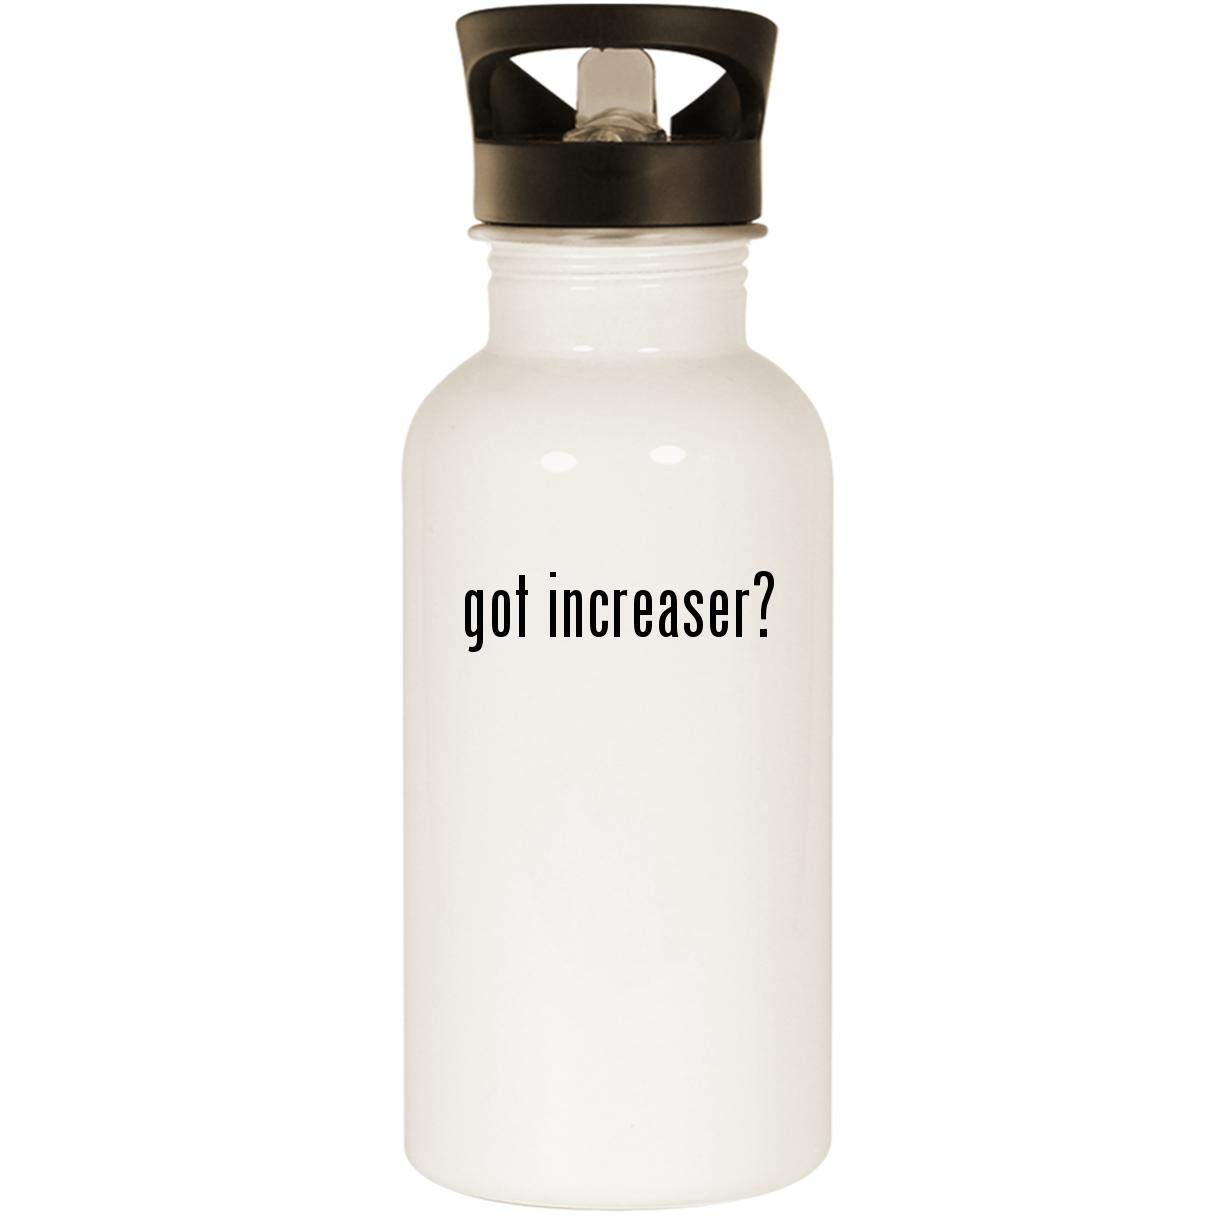 got increaser? - Stainless Steel 20oz Road Ready Water Bottle, White